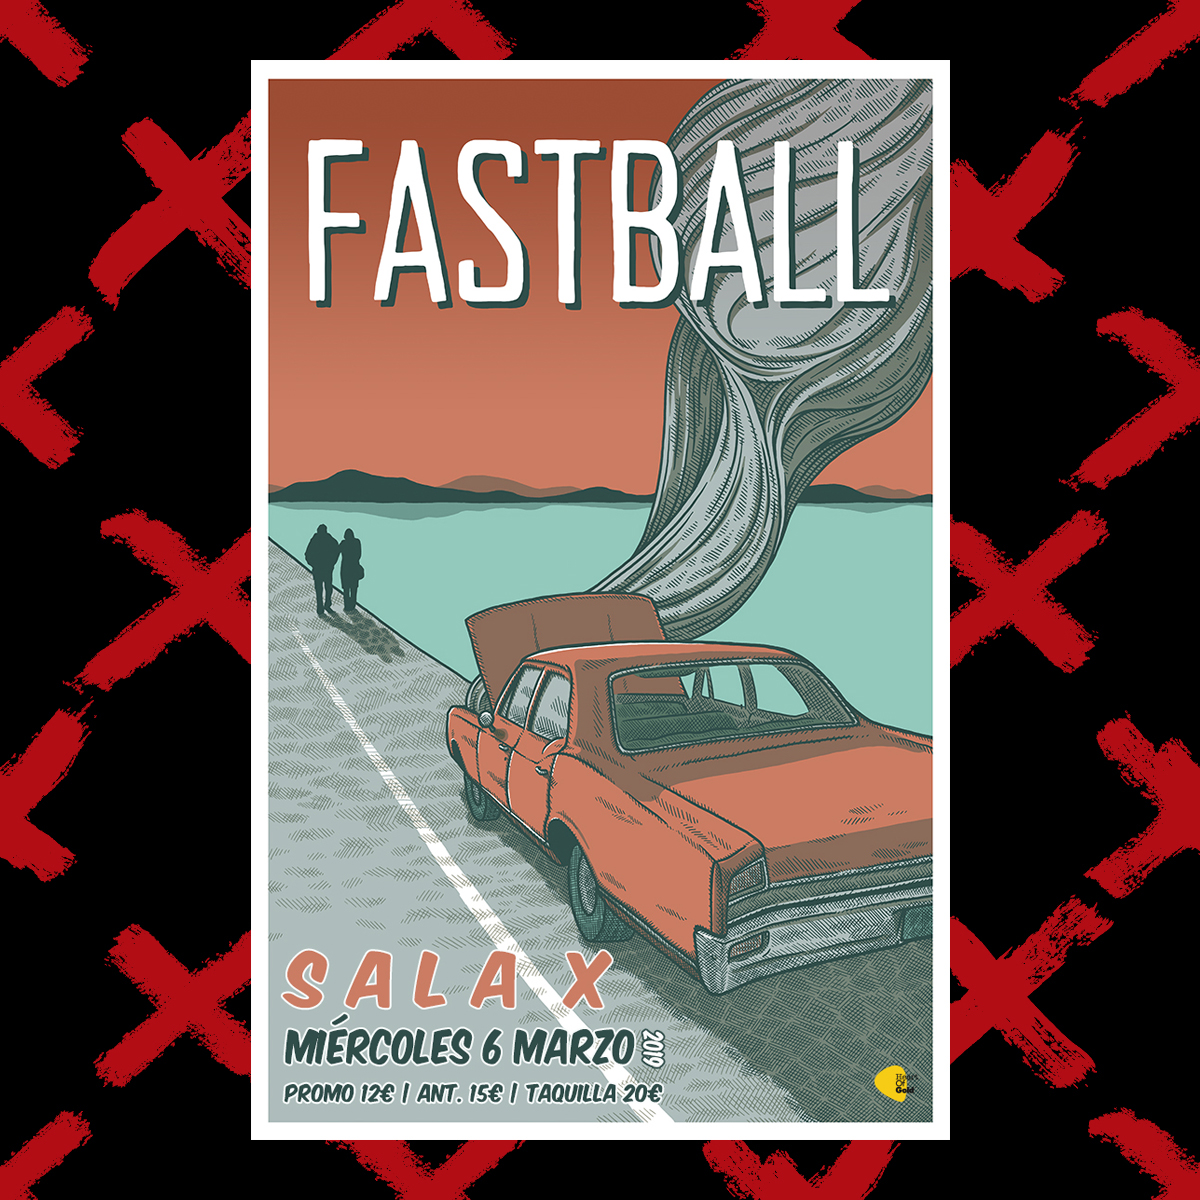 fastball instagram